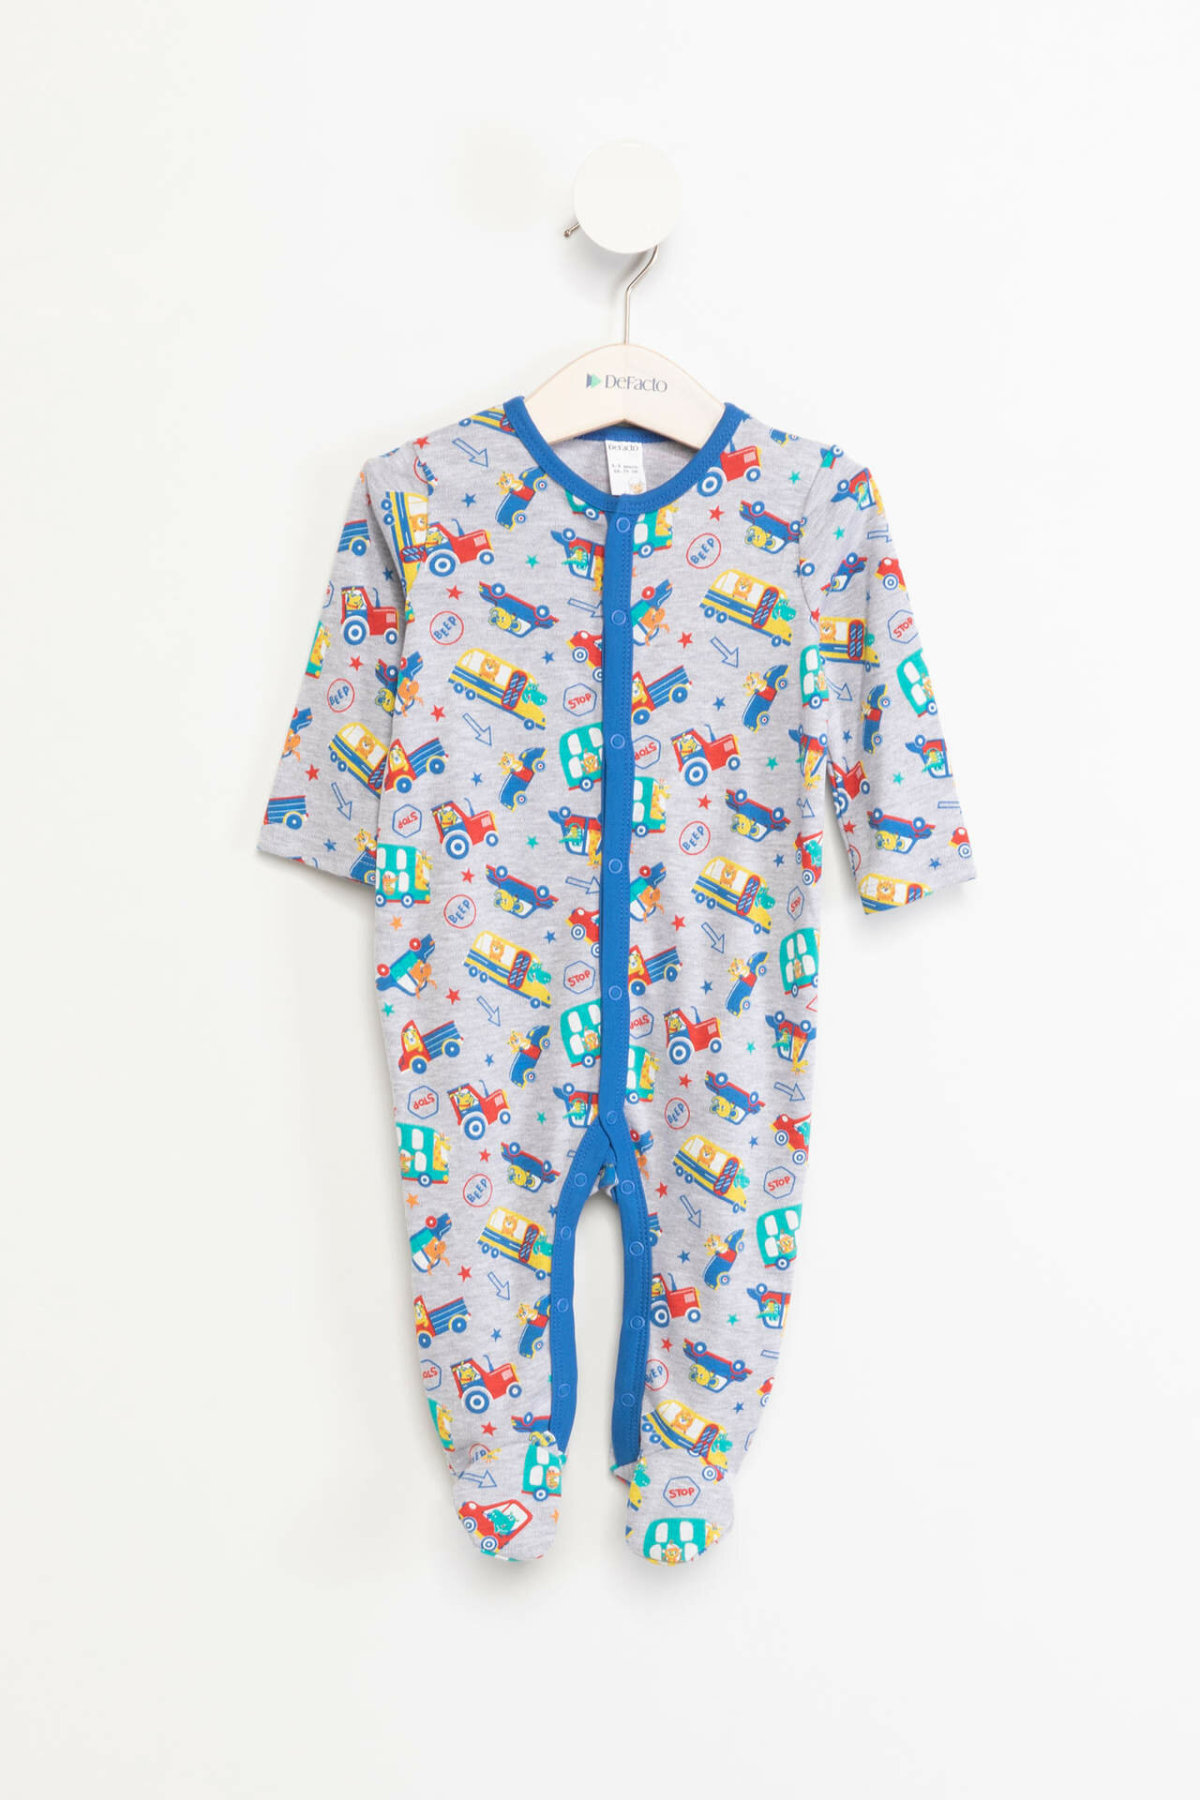 DeFacto Spring Autumn Baby Clothing Newborn Cartoon Soft Rompers Infant Jumpsuit Cute Costumes Pajamas K1487A218WN